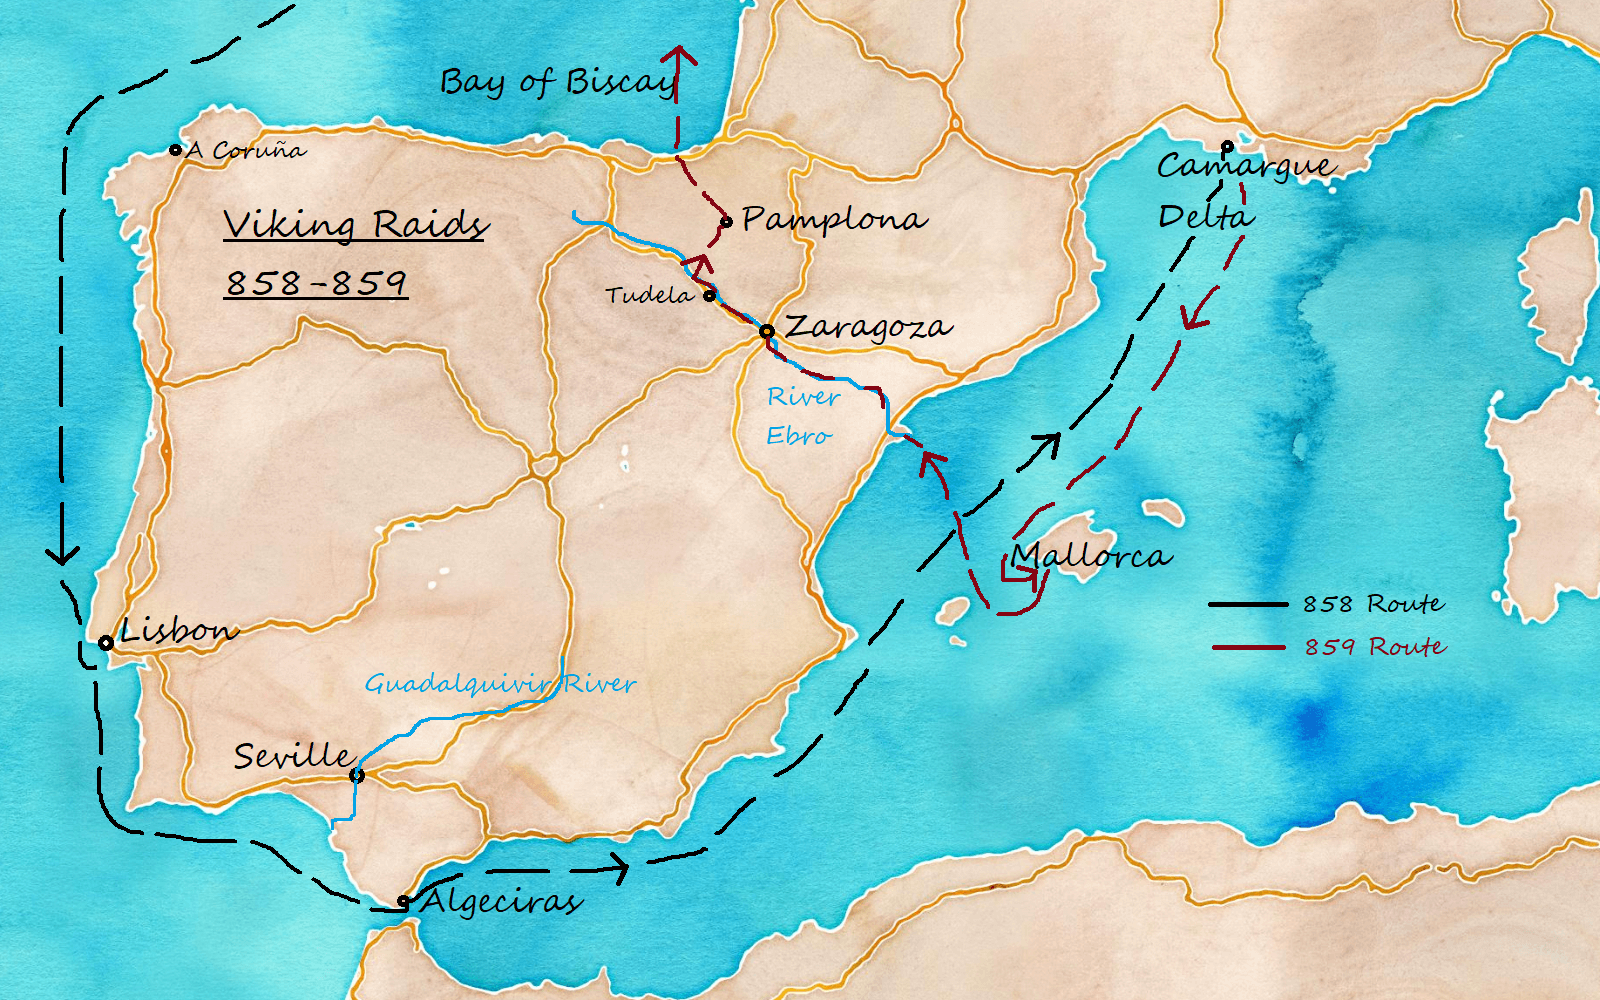 Viking Route and Escape